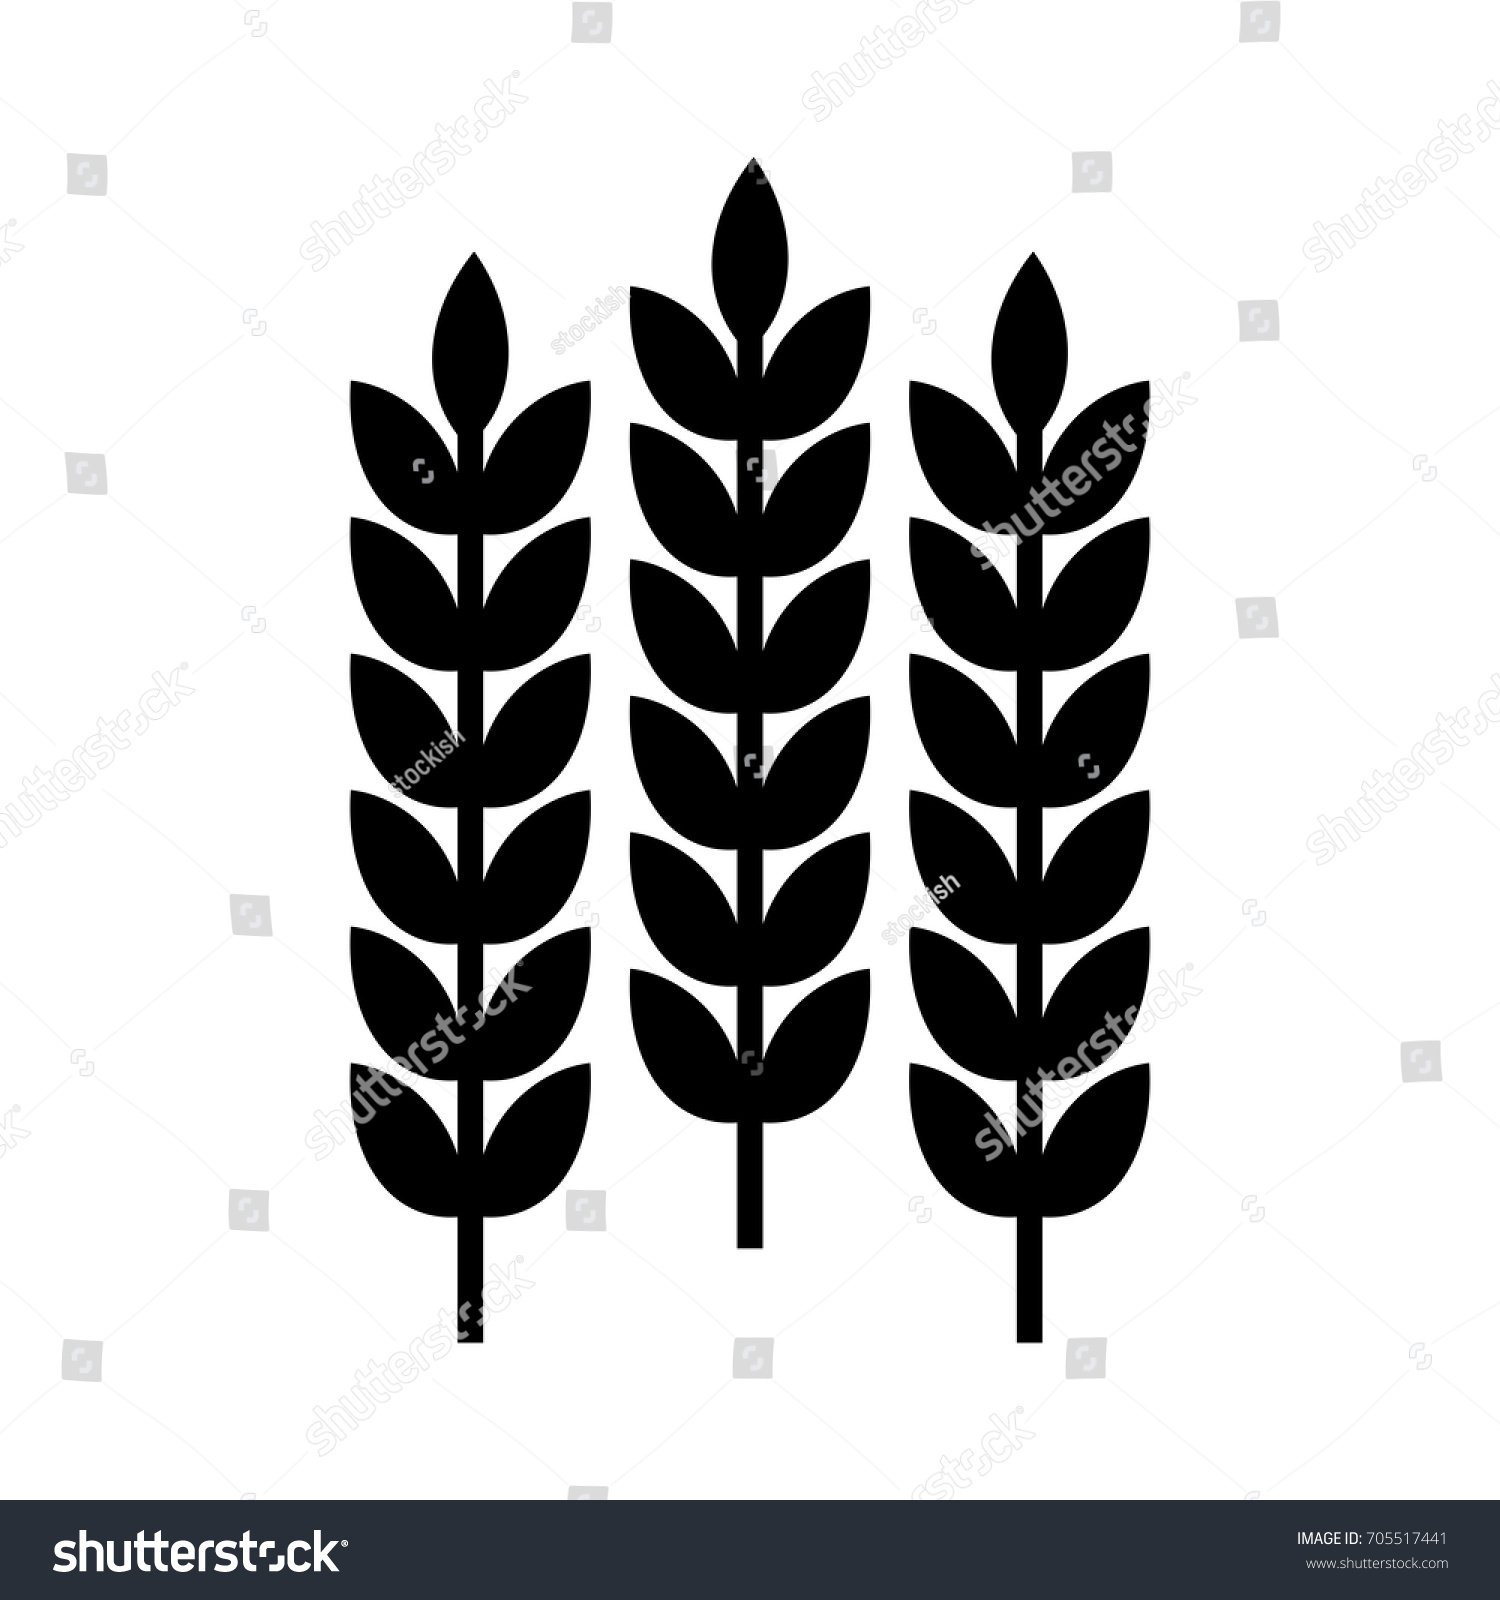 Wheat grain vector logo icon symbol stock vector 705517441 wheat grain vector logo icon and symbol buycottarizona Image collections